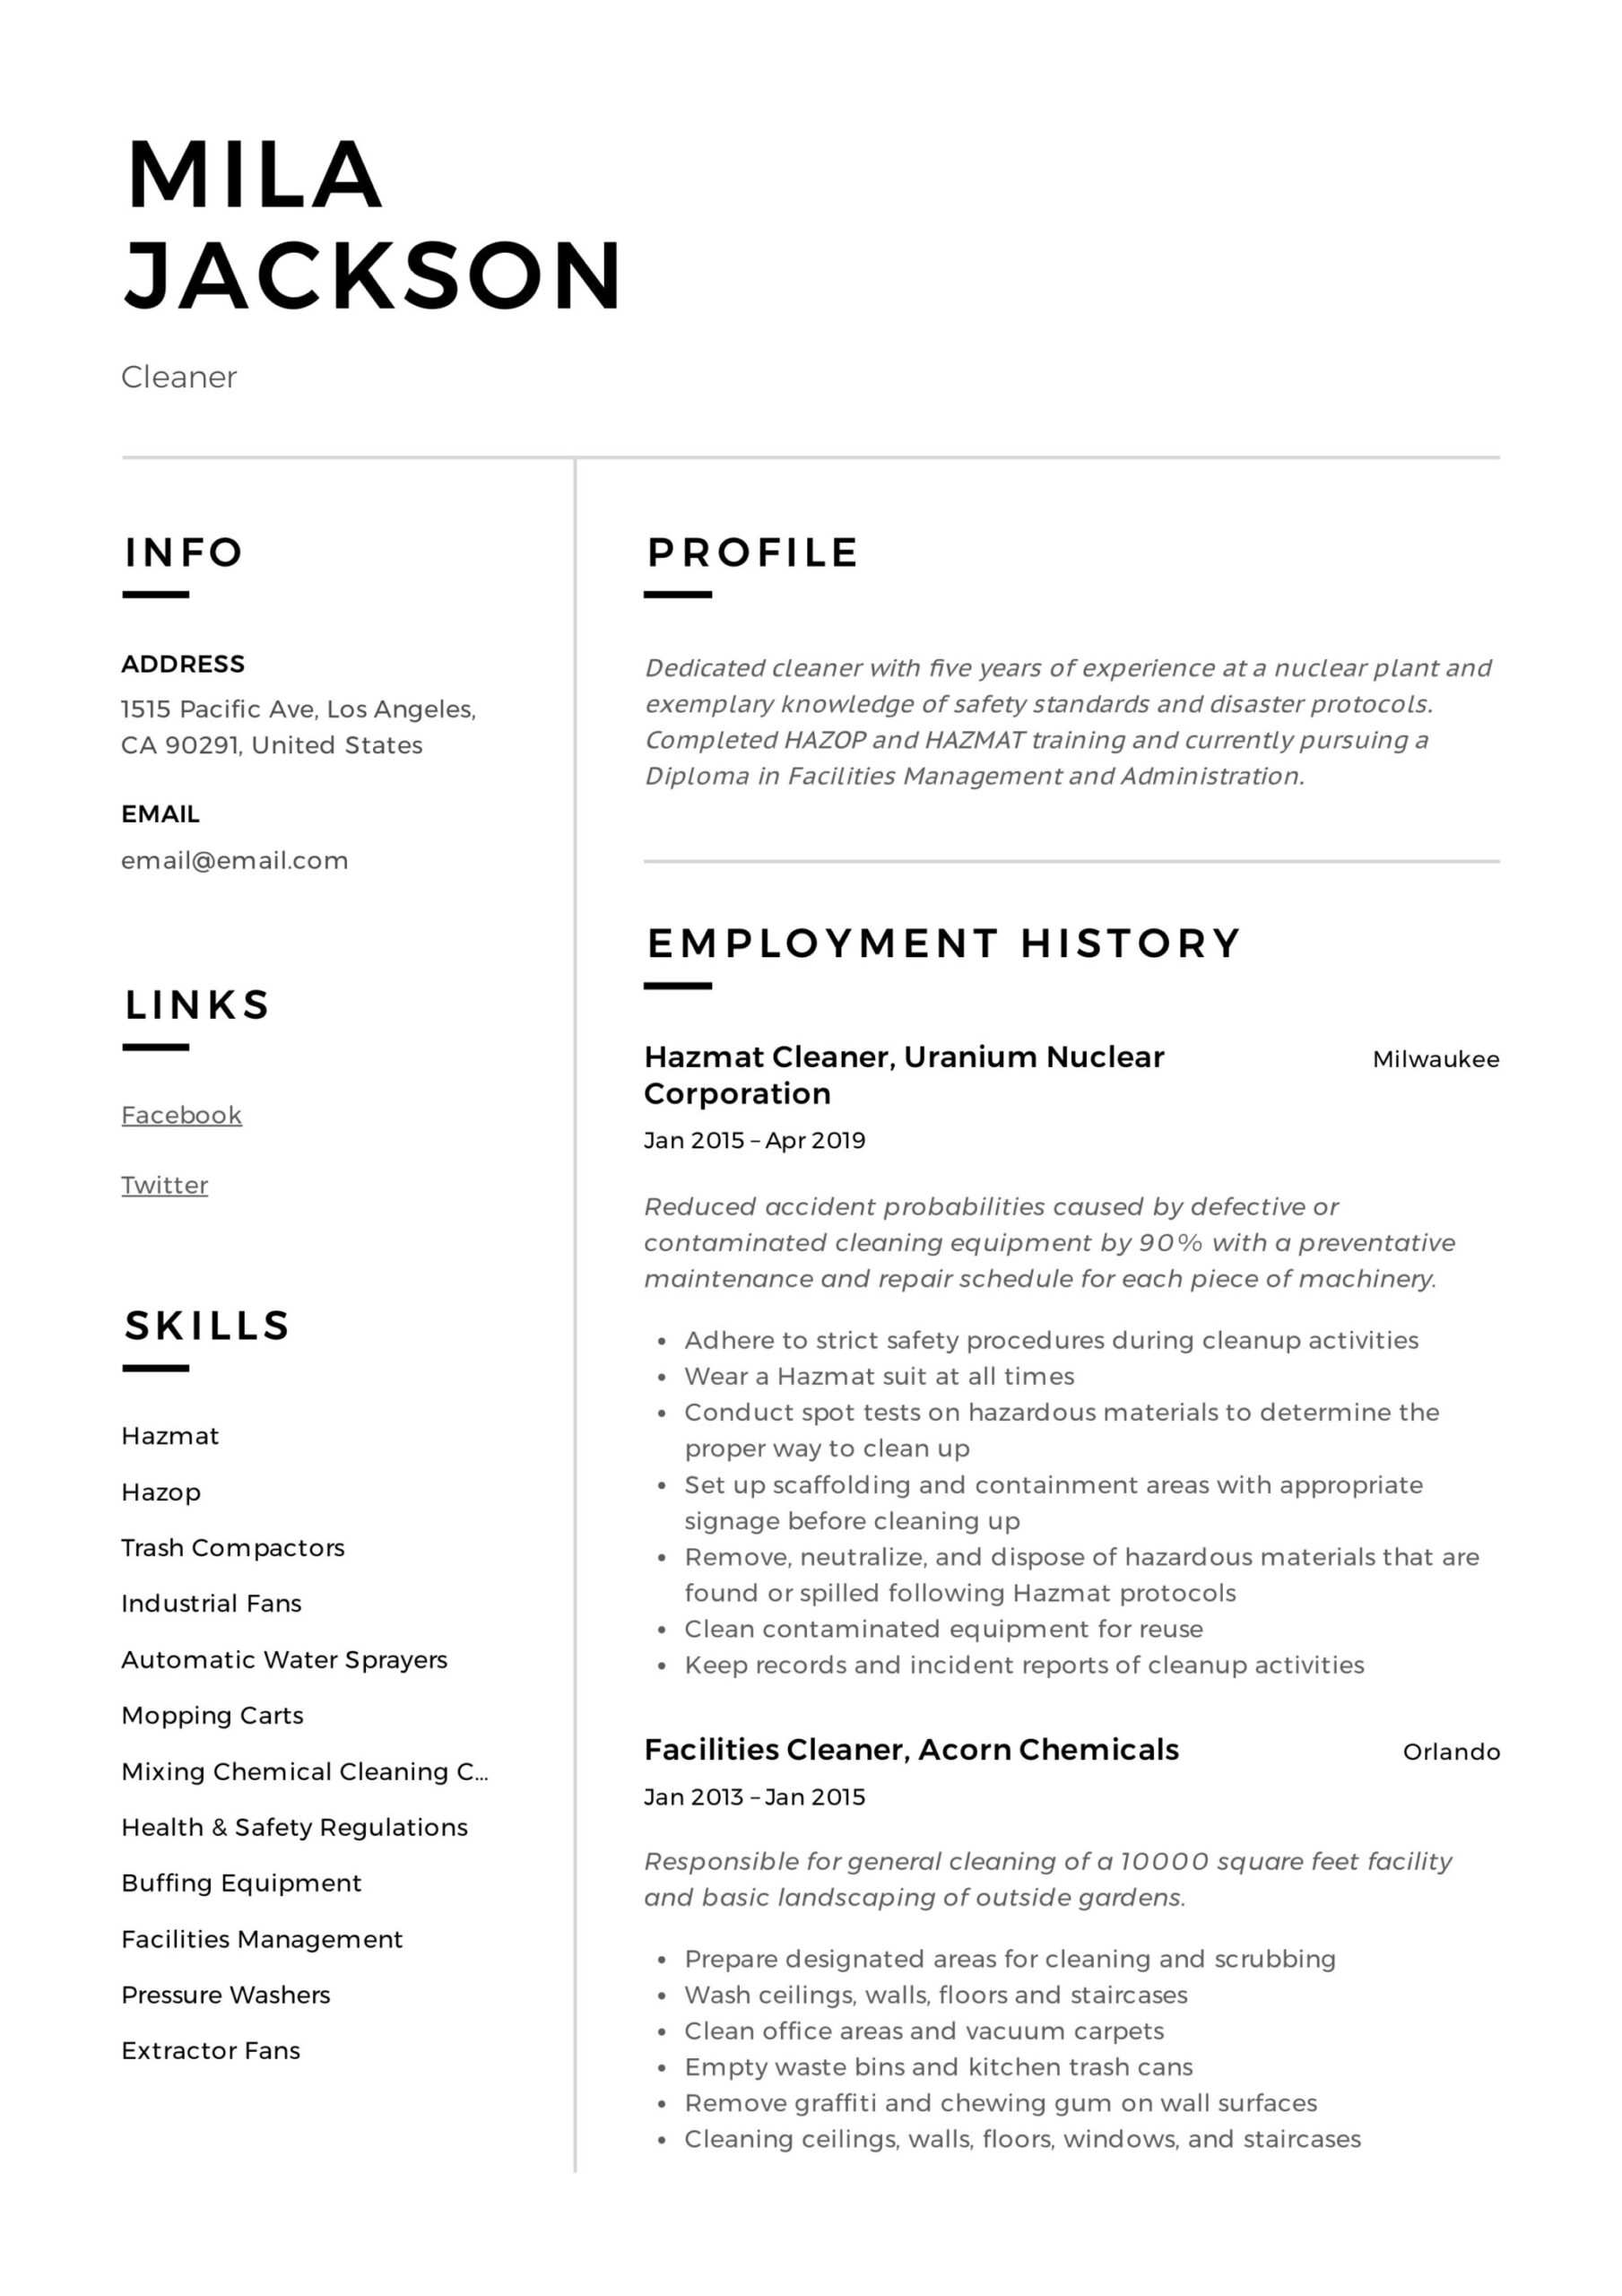 cleaner resume writing guide templates pdf for cleaning job mila summary students Resume Resume For Cleaning Job